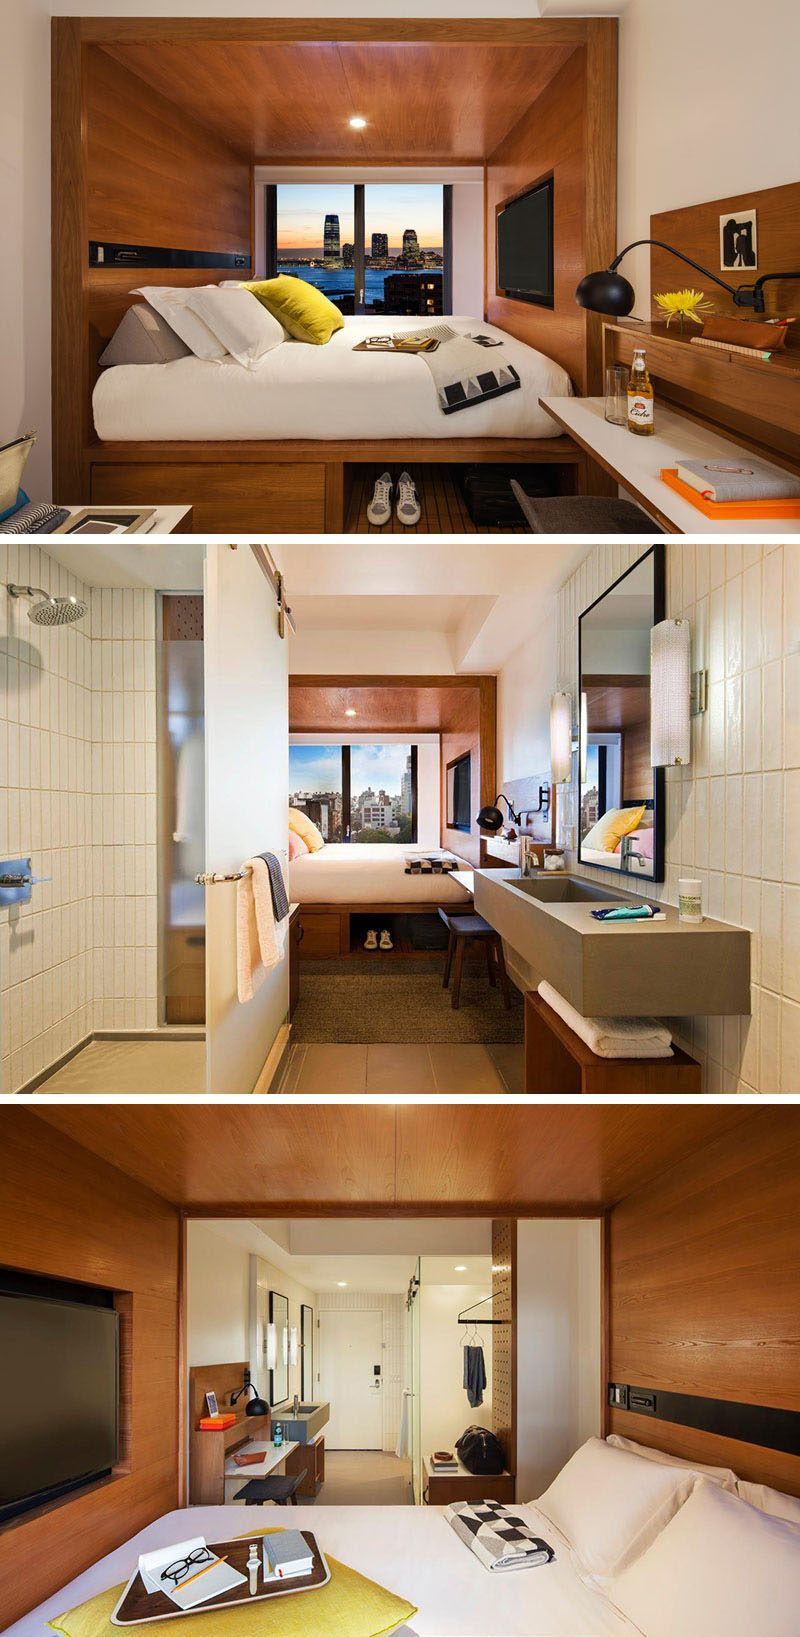 Hotel Room Ideas: 8 Small Hotel Rooms That Maximize Their Tiny Space